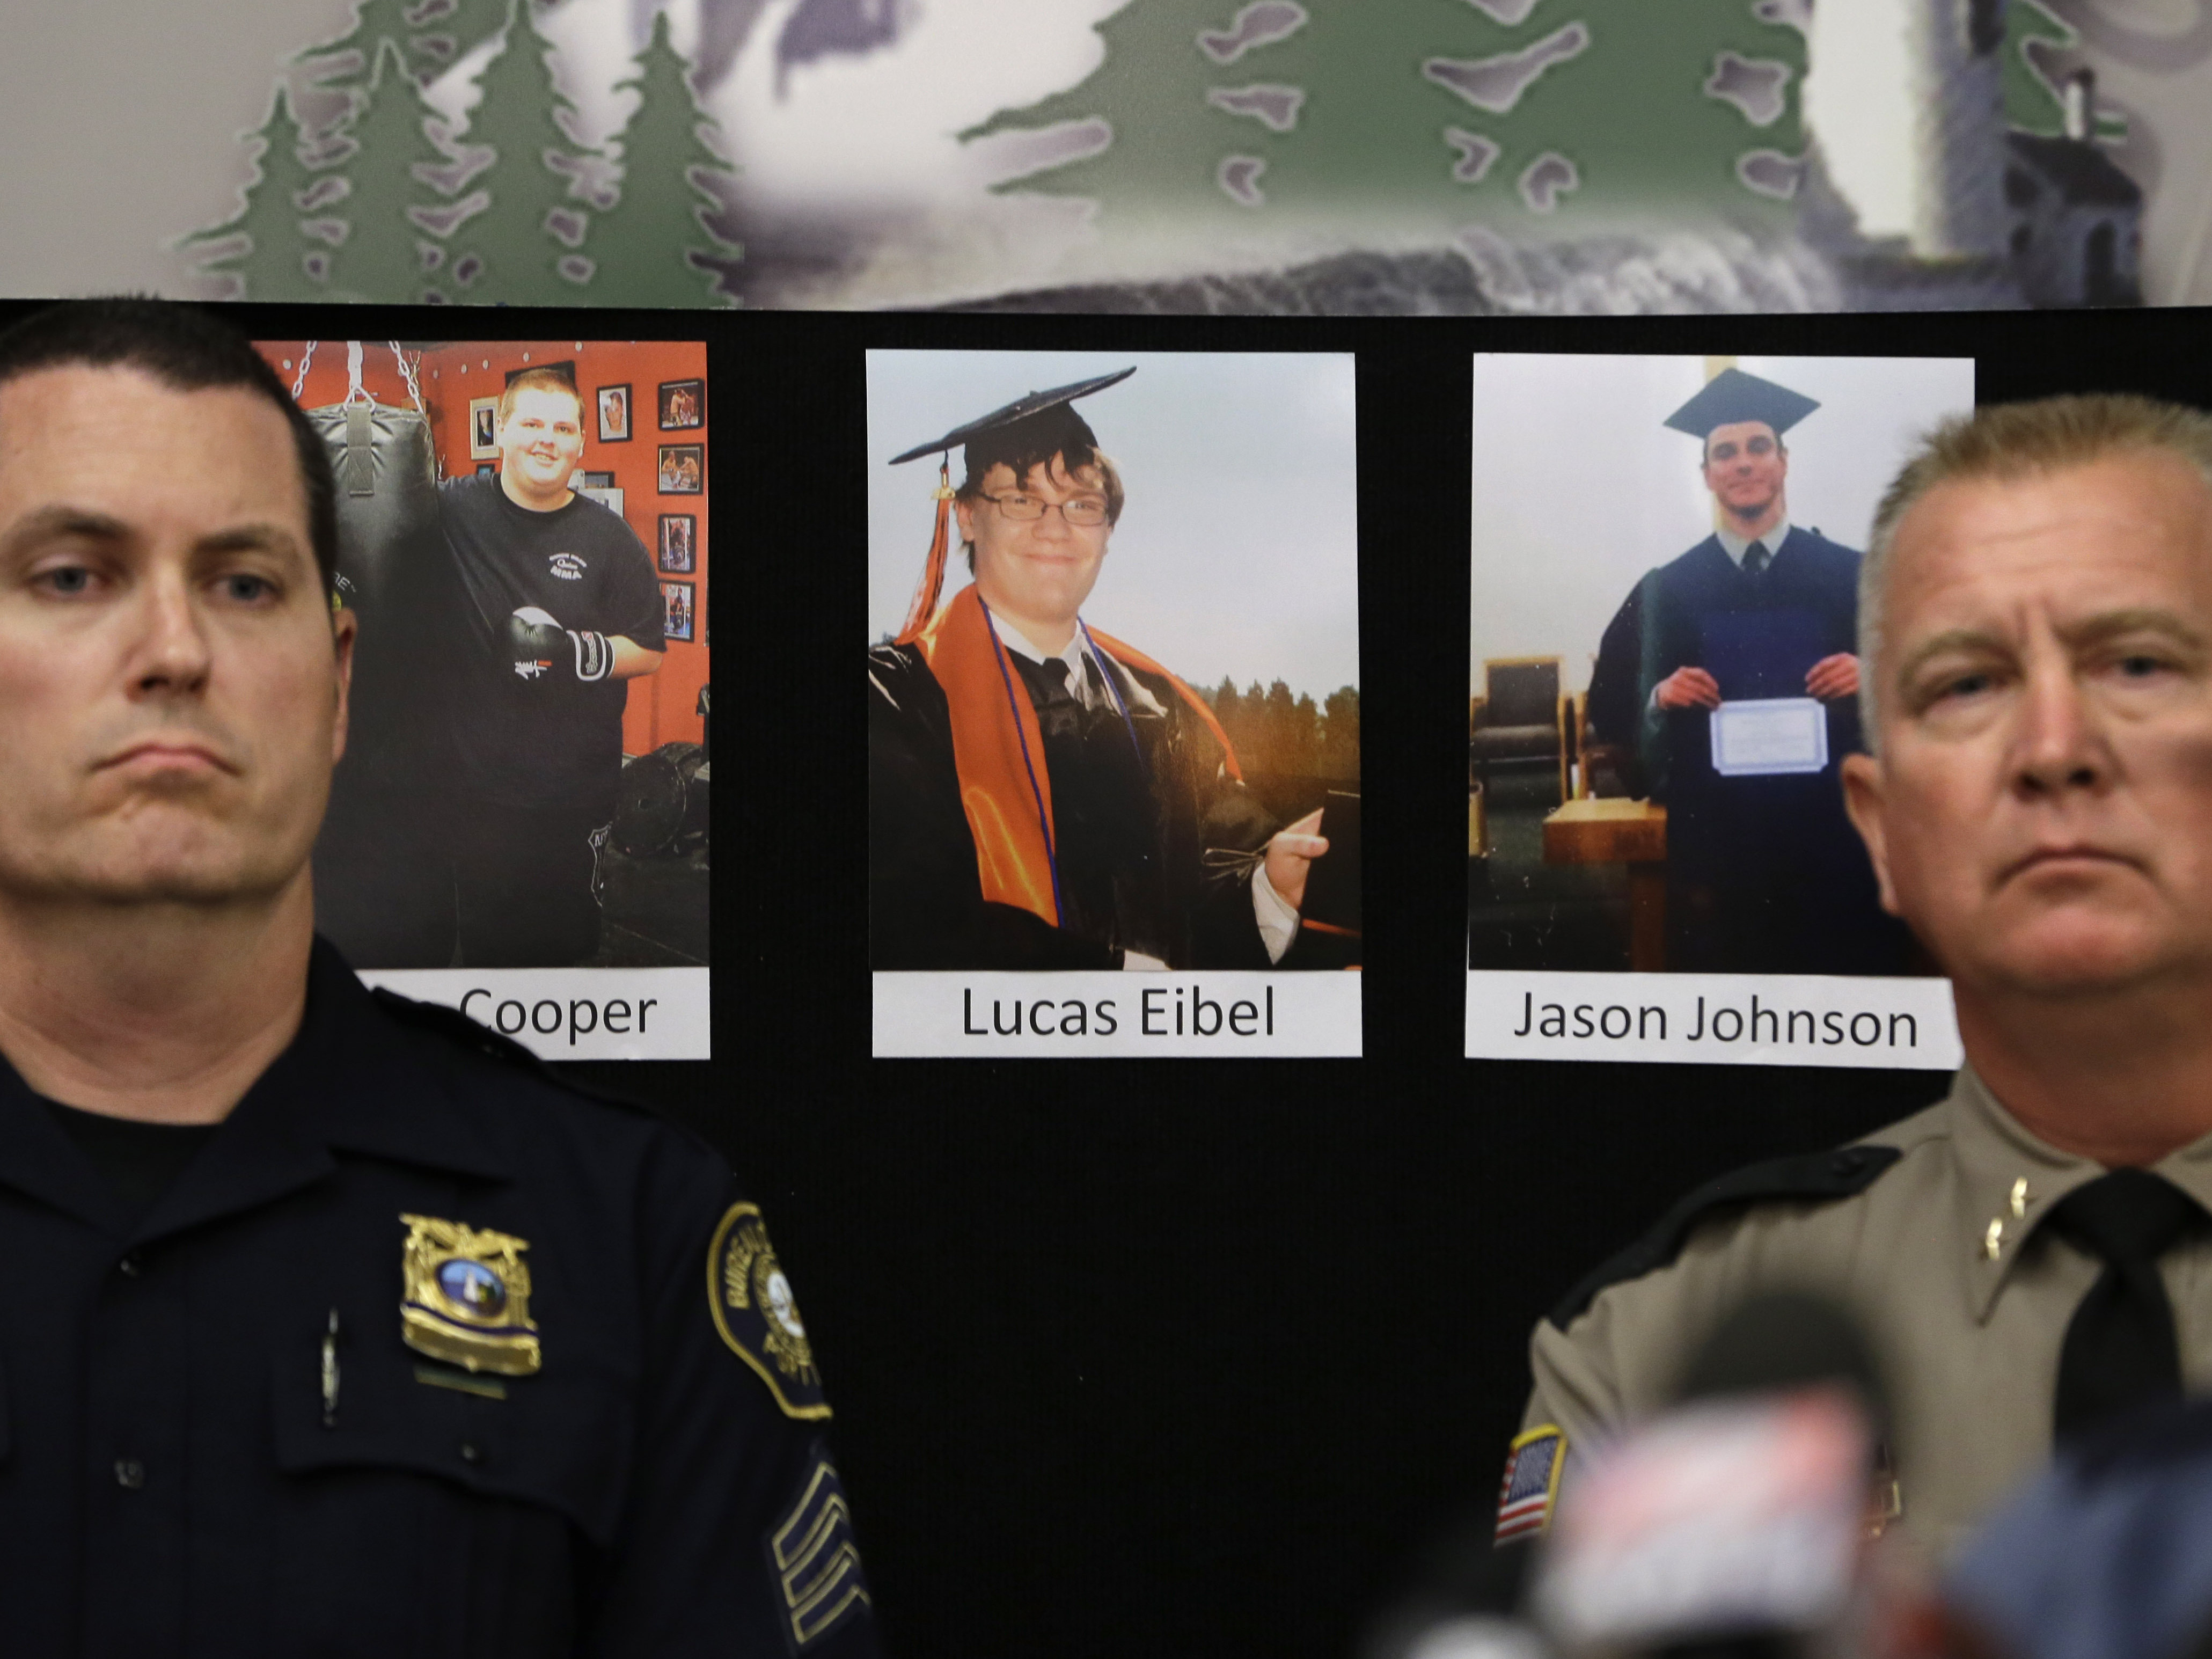 Photos of victims of the mass shooting at Umpqua Community College in Roseburg, Ore., are displayed behind Portland Police Sgt. Peter Simpson (left) and Douglas County Sheriff John Hanlin. (Photo by Rich Pedroncelli/AP)